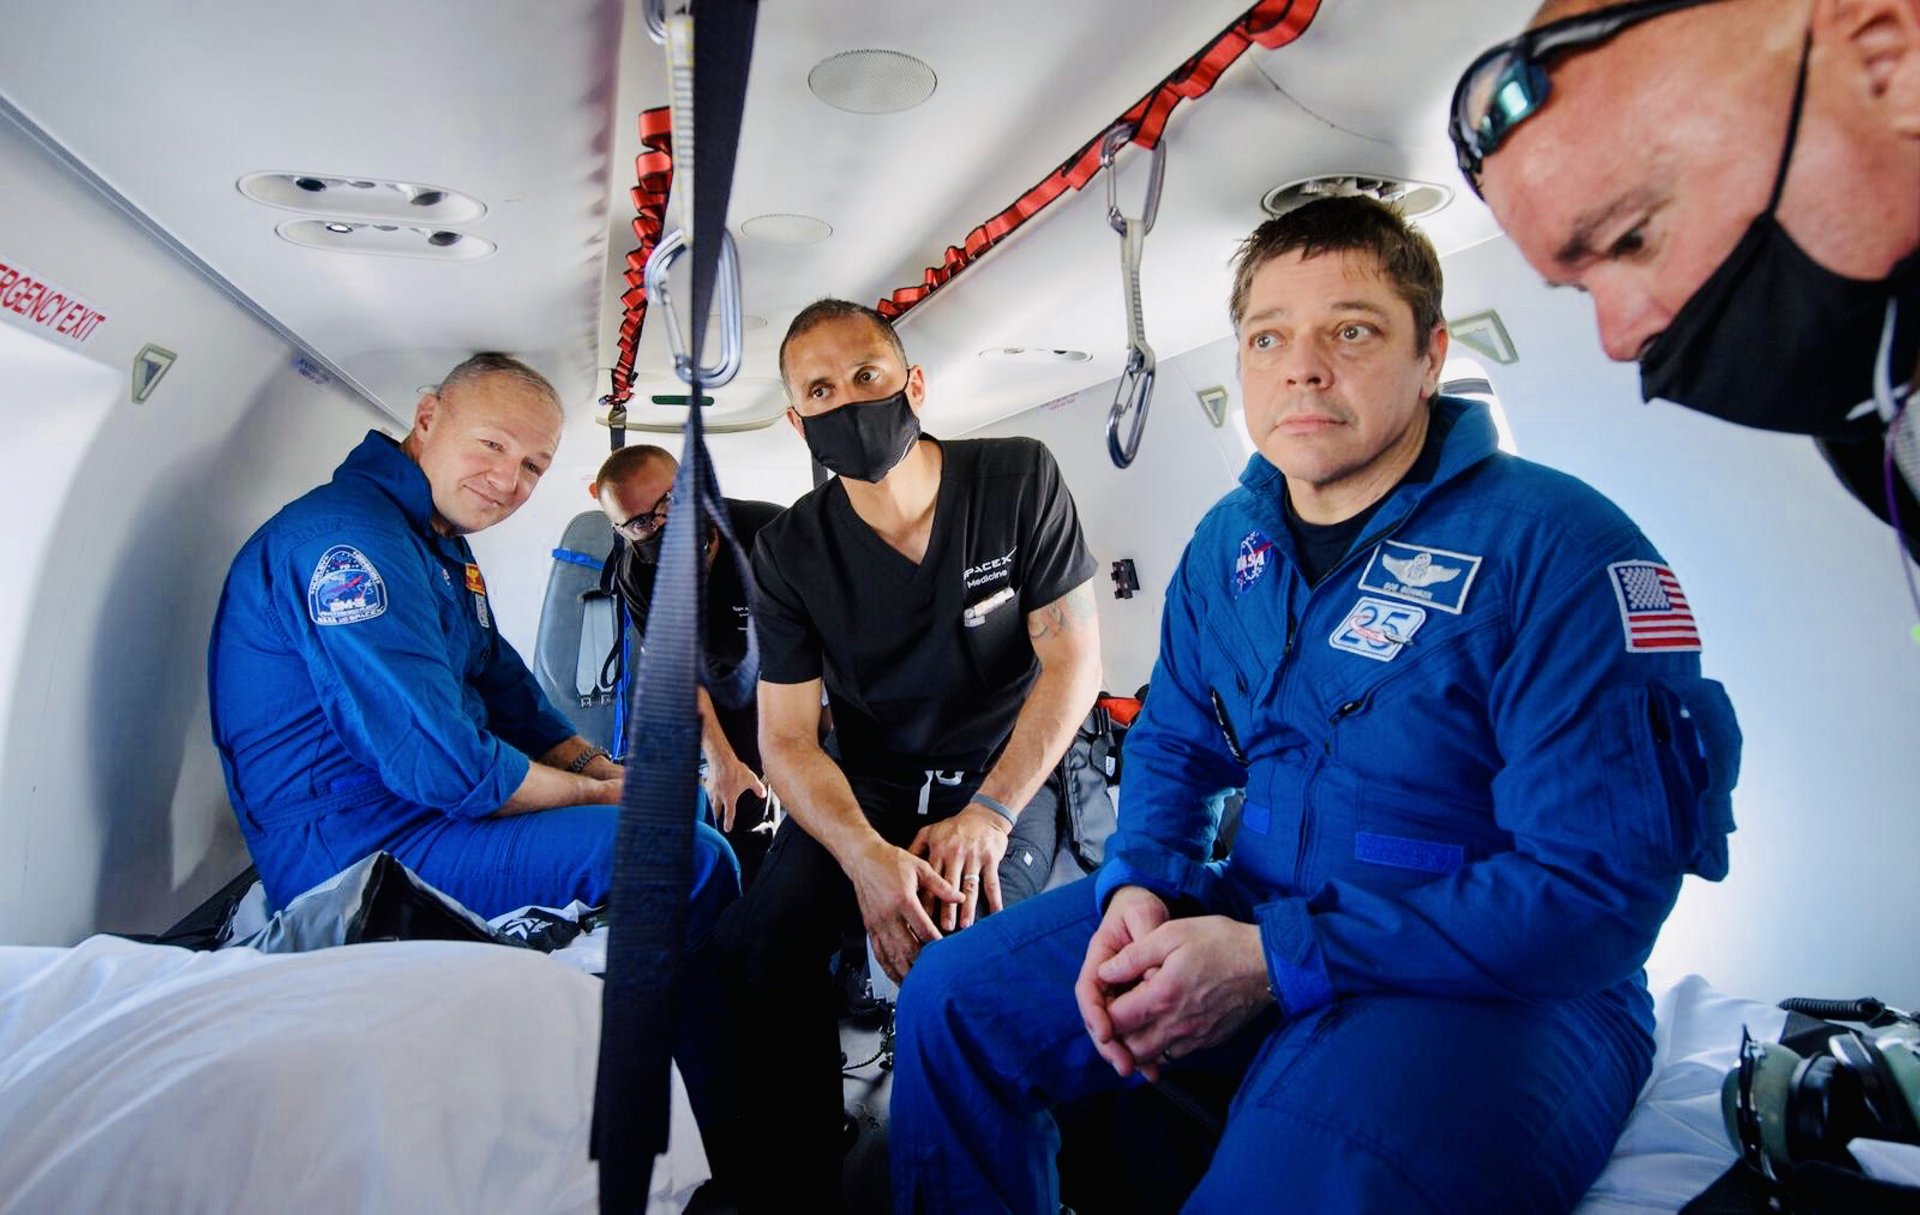 NASA astronauts Bob Behnken and Doug Hurley were transported aboard an Airbus H225 helicopter after their 18-hour flight from the International Space Station inside a SpaceX Crew Dragon Capsule, which landed in the Gulf of Mexico